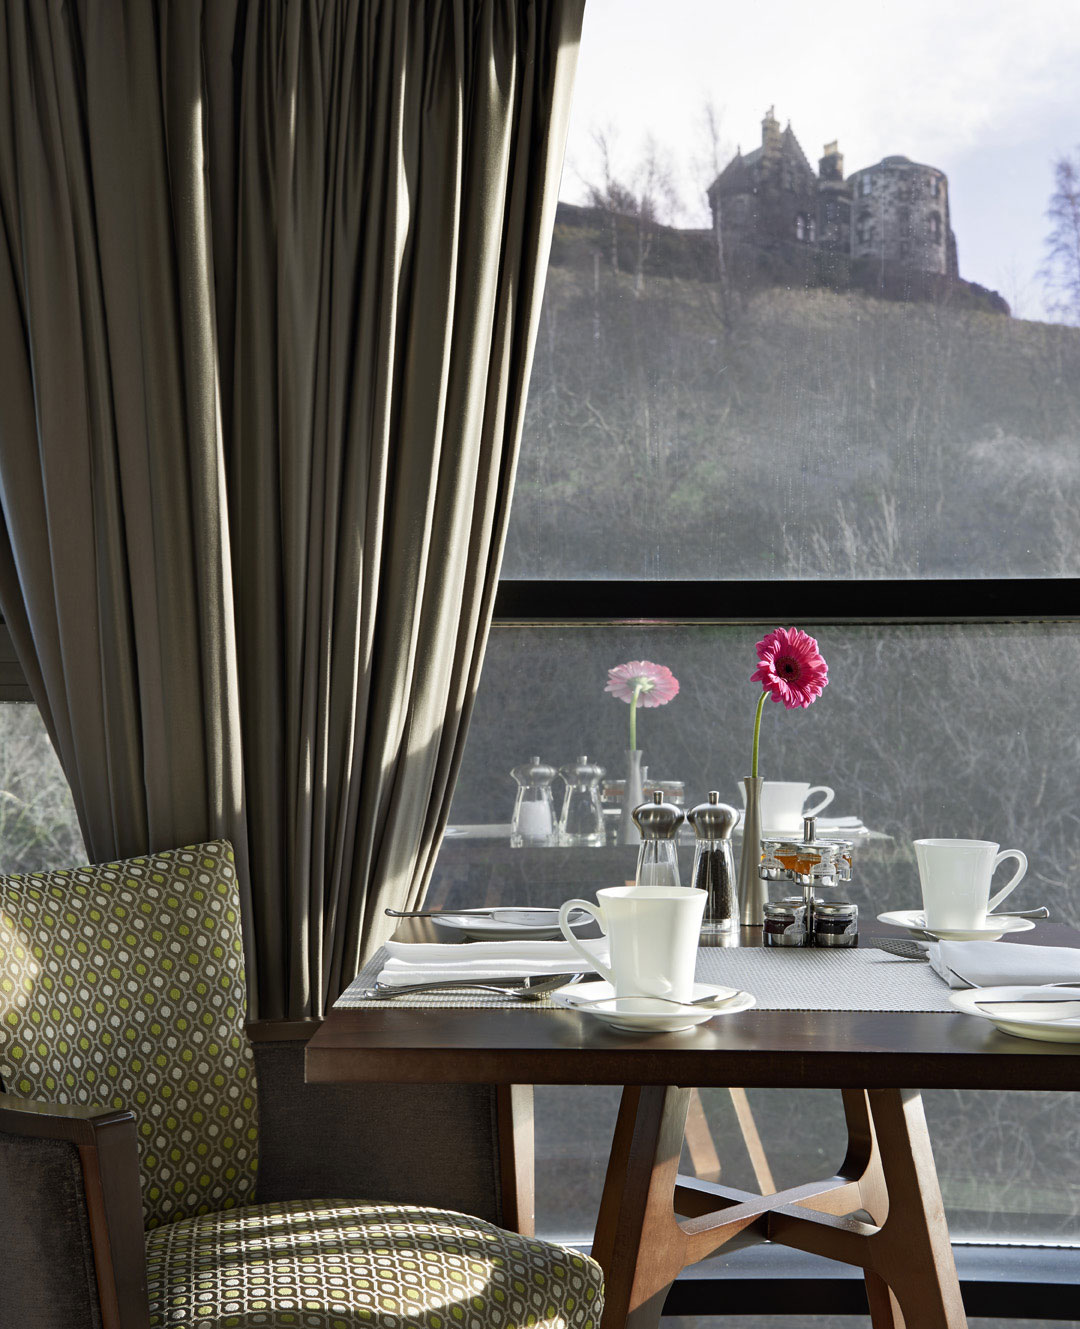 The Observatory Restaurant - Edinburgh